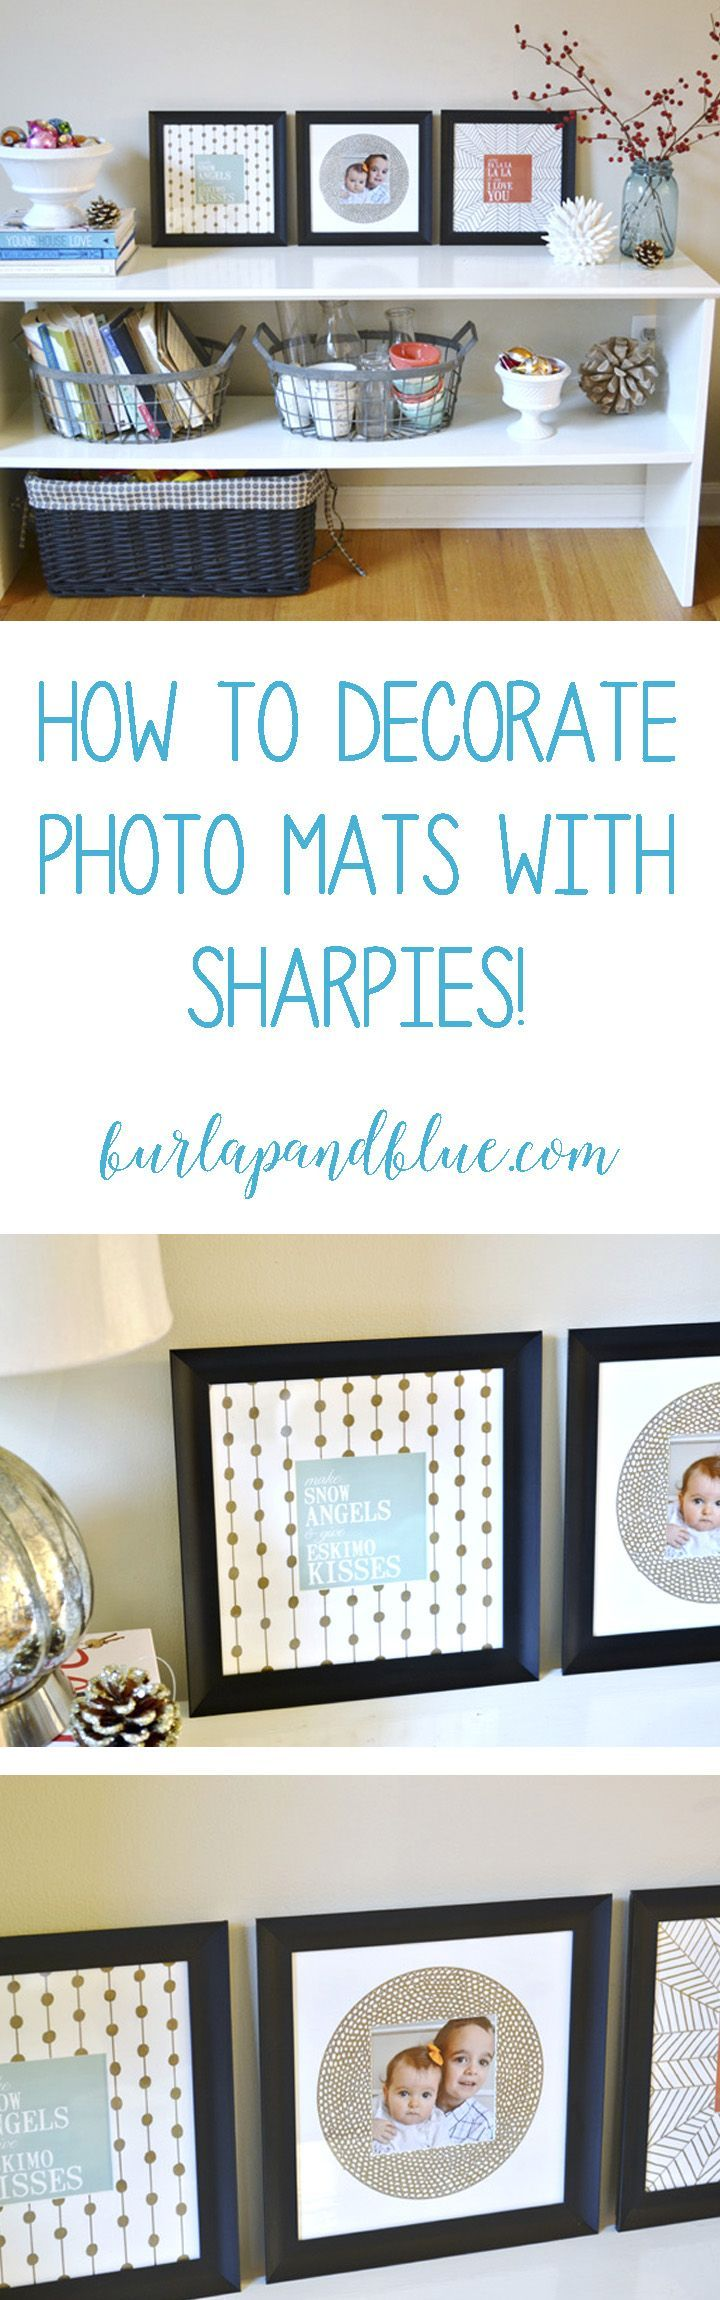 How to decorate picture frame mats with sharpies! Easy sharpie craft!